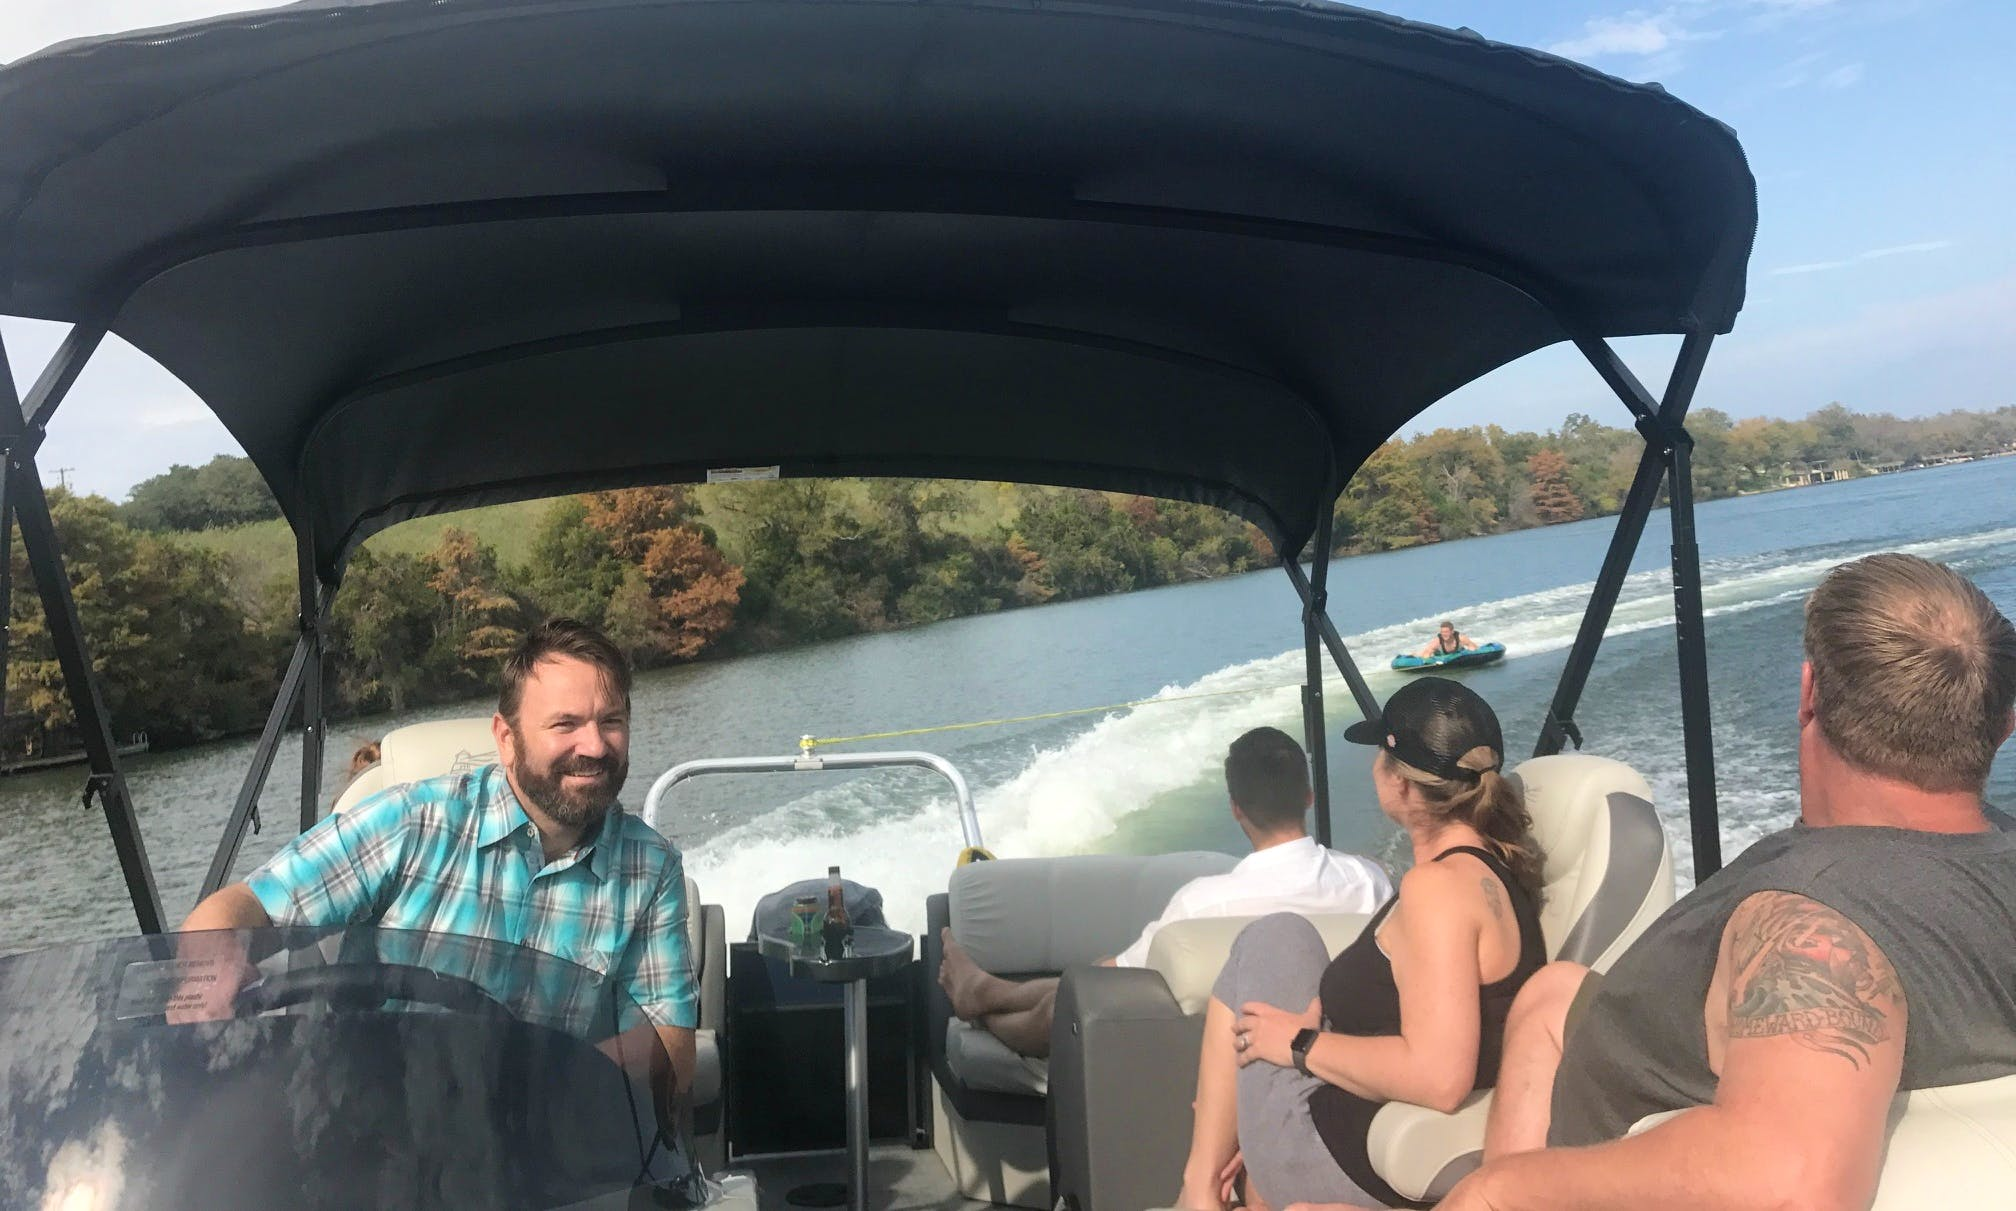 2017 24ft Misty Harbor 200 Hp Tritoon!  Lake Travis, Lake Austin, Canyon Lake are all included